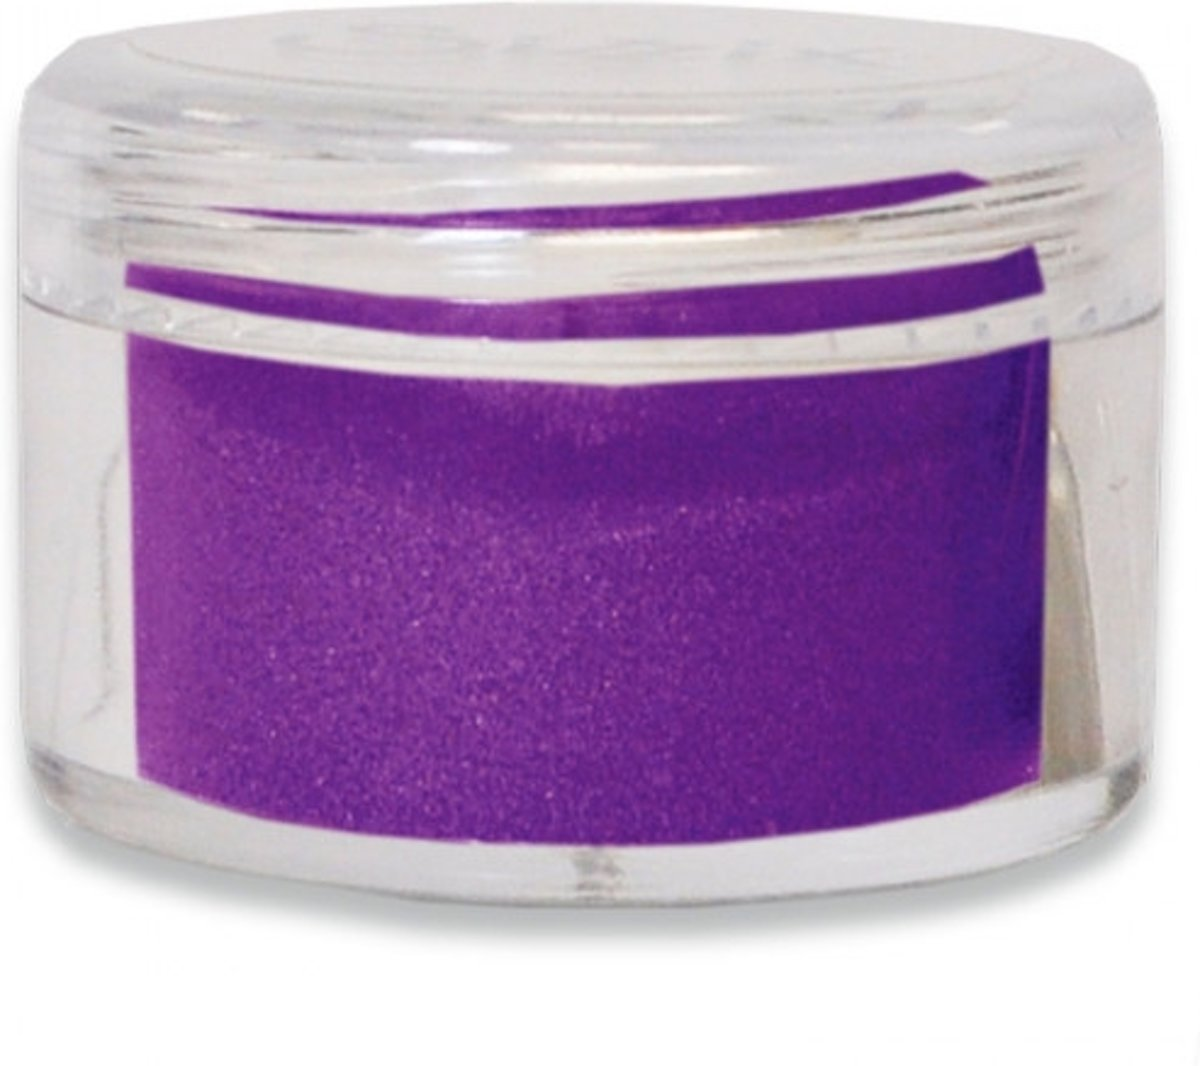 Sizzix • Embossing powder opaque purple dusk